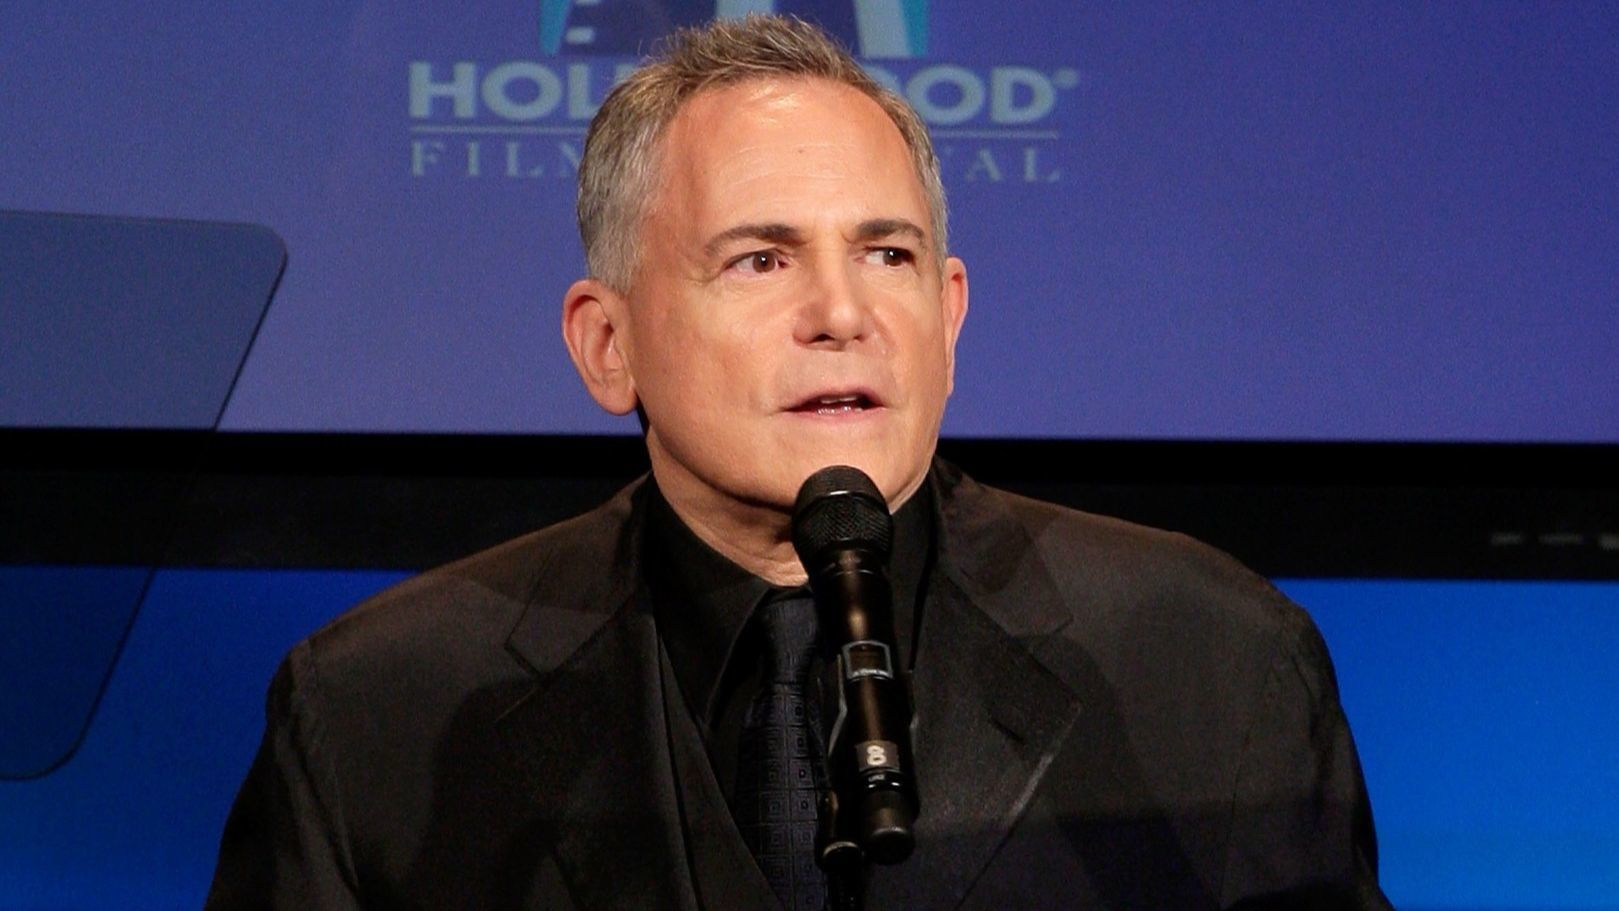 Craig Zadan, Oscars producer and the man who helped bring musicals back to TV, dies at 69